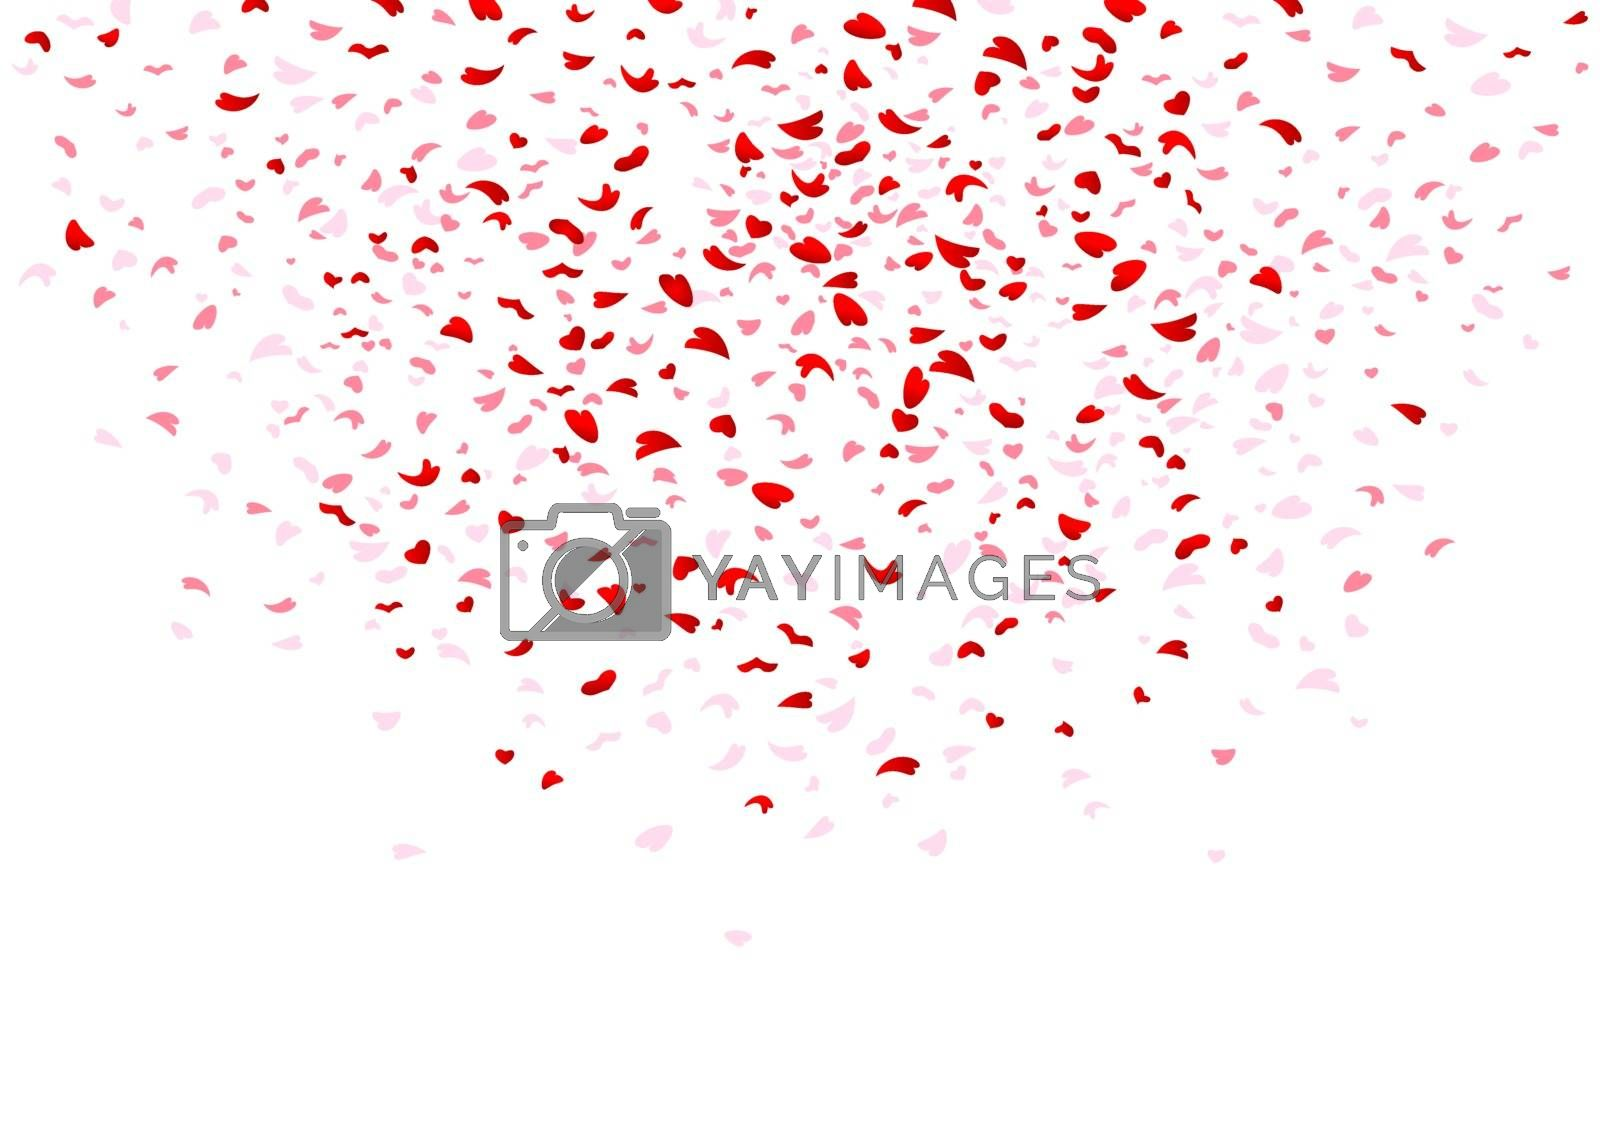 Background of red and pink hearts. Hearts like confetti. Red and pink hearts on a white background. Decorative background for Valentine's Day.